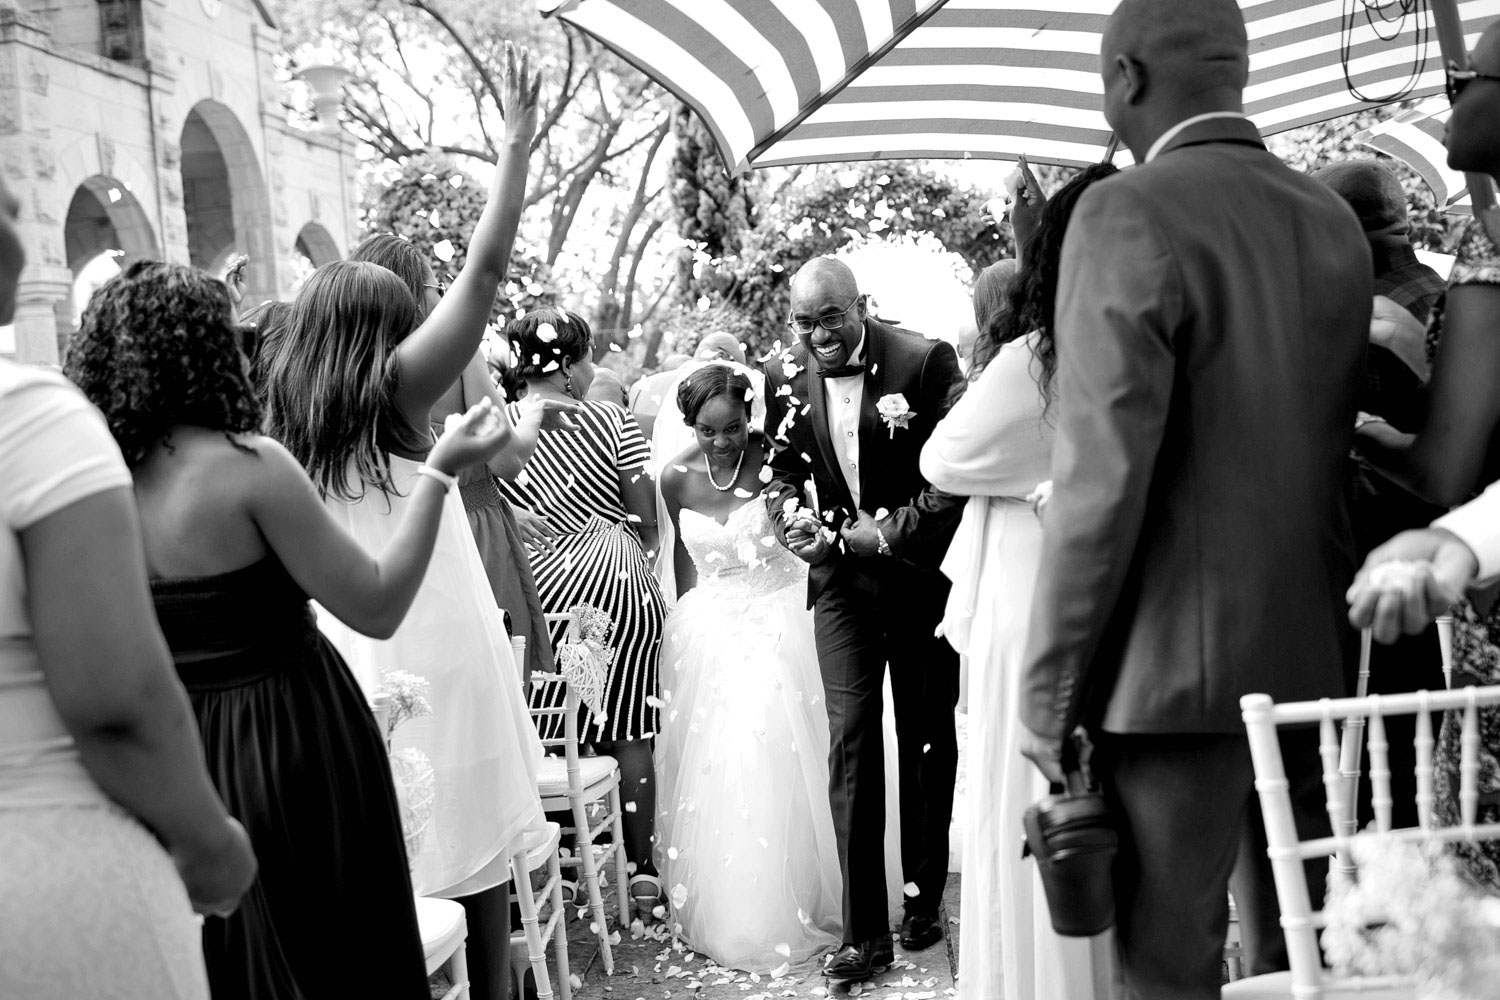 Wedding celebrations at Shepstone Gardens